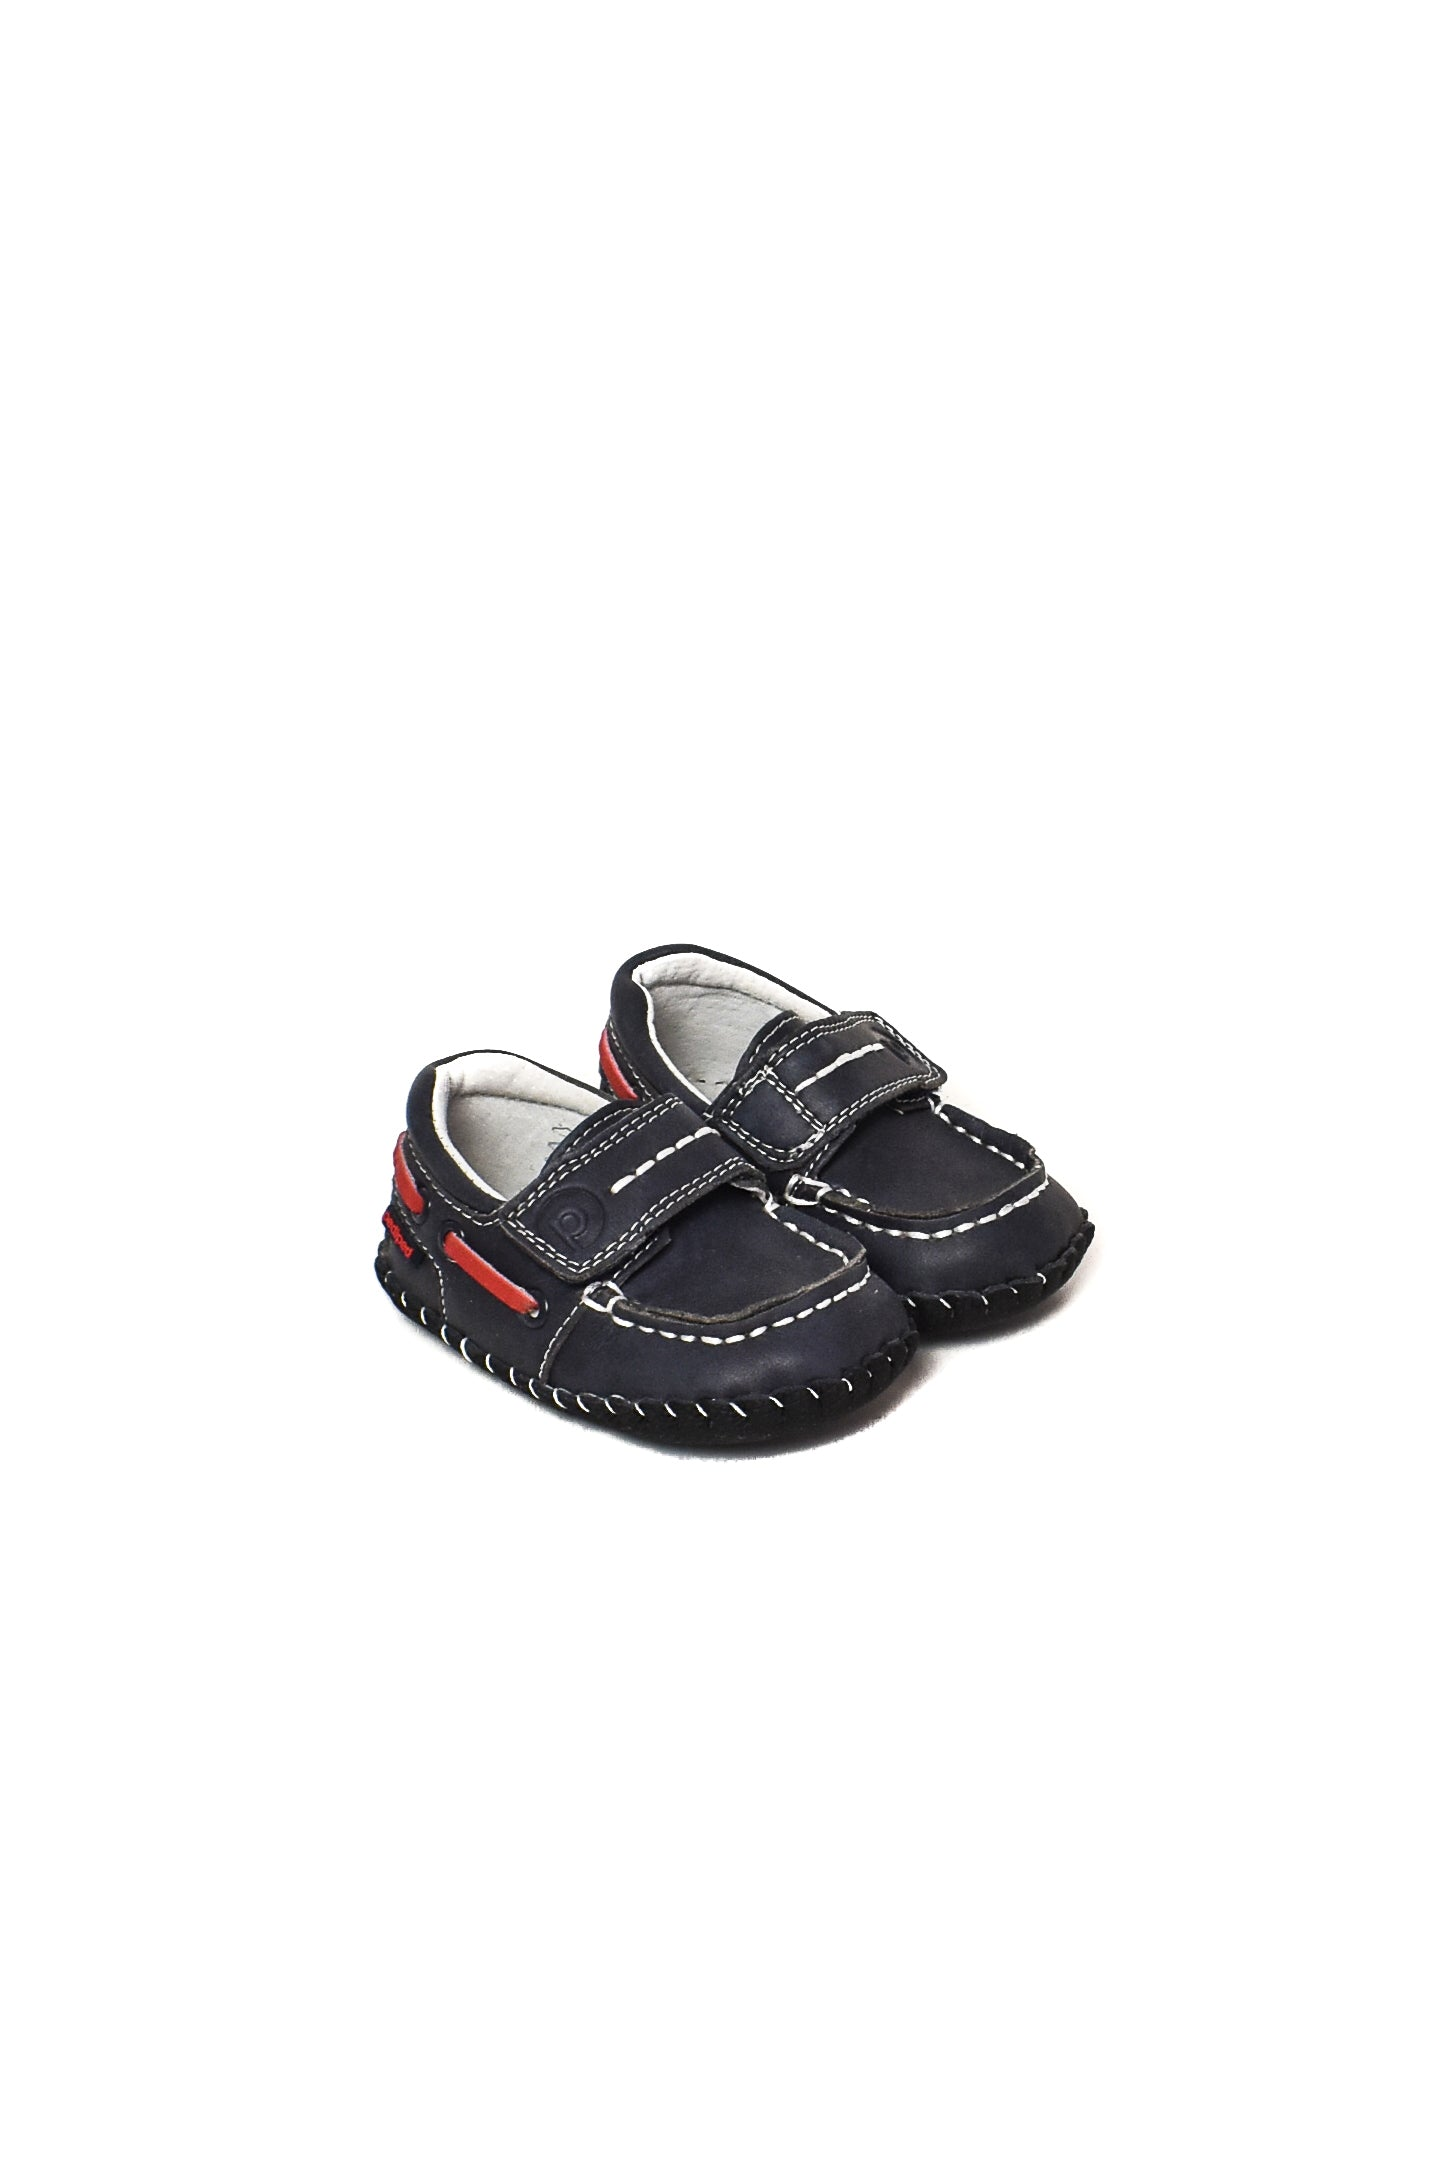 10008715 pediped Baby~ Shoes 6-12M at Retykle